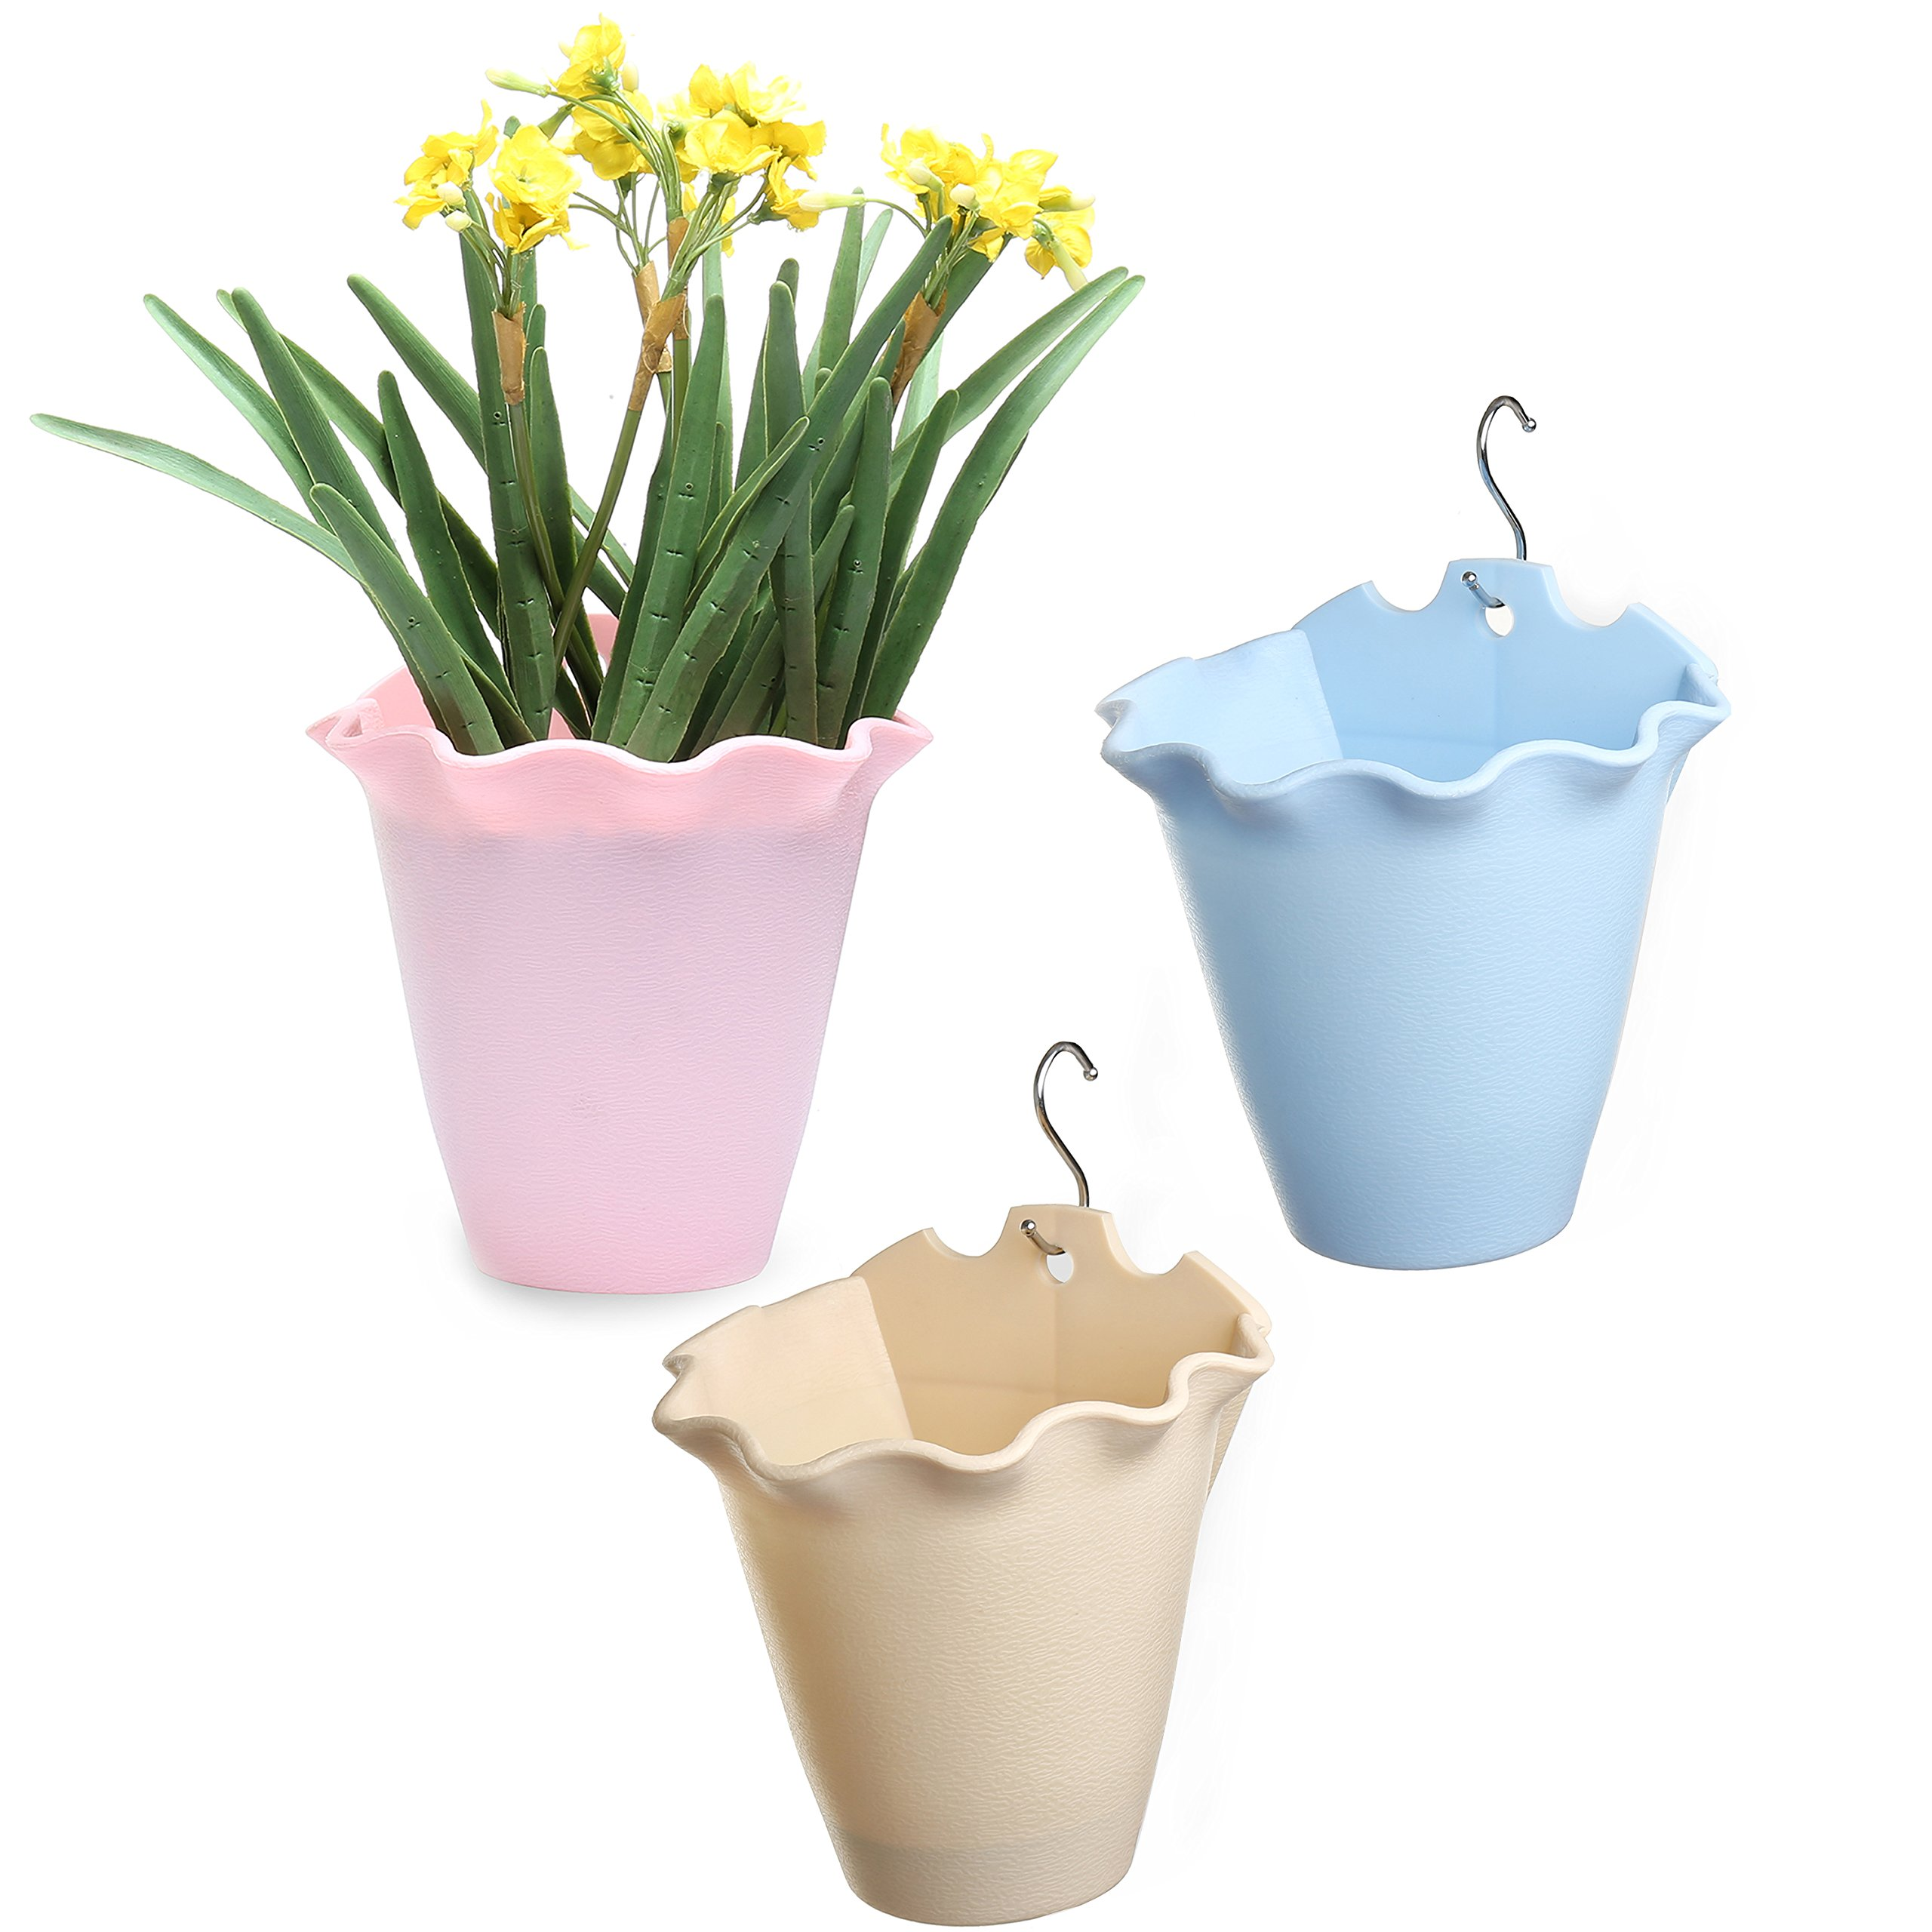 3 Pack Hanging Self-Watering Plastic Flower Pots with 3 hooks by MyGift